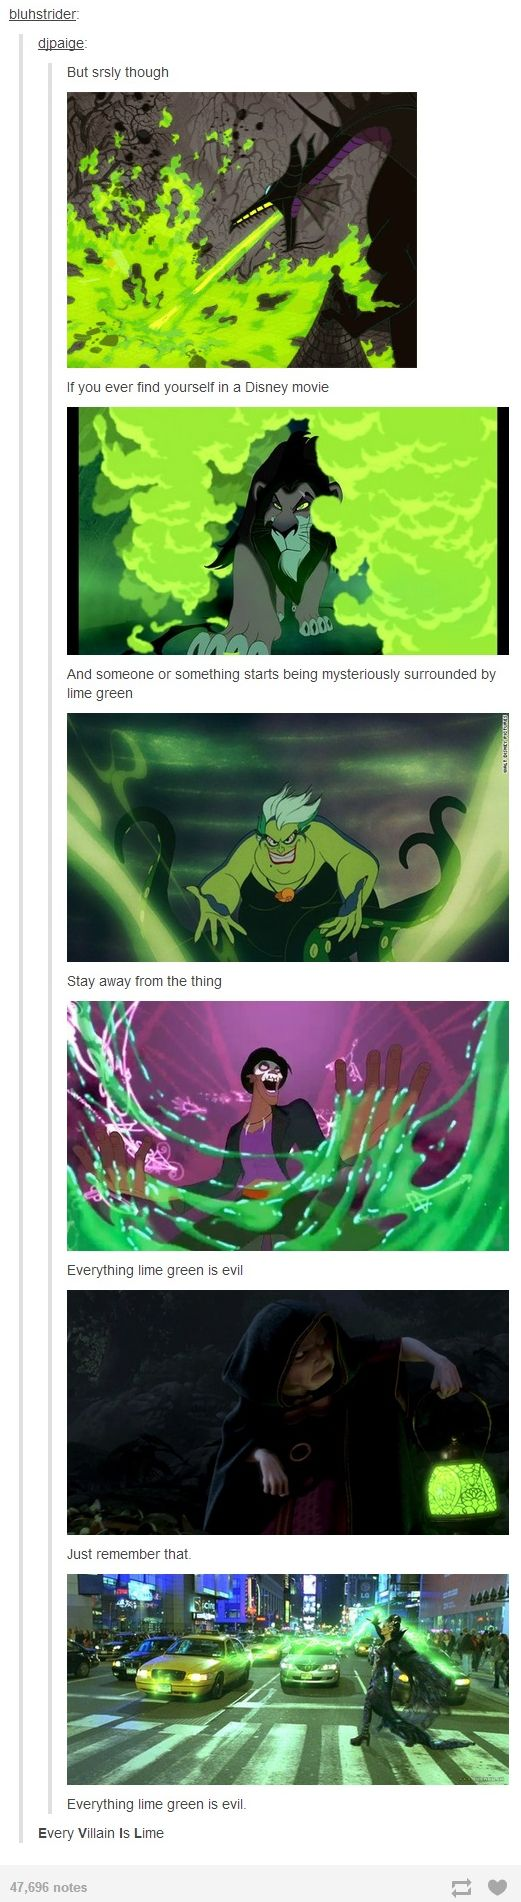 Every Villain Is Lime. Even the new Maleficent movie. When she does something evil, it's green fog. When it's good it's gold